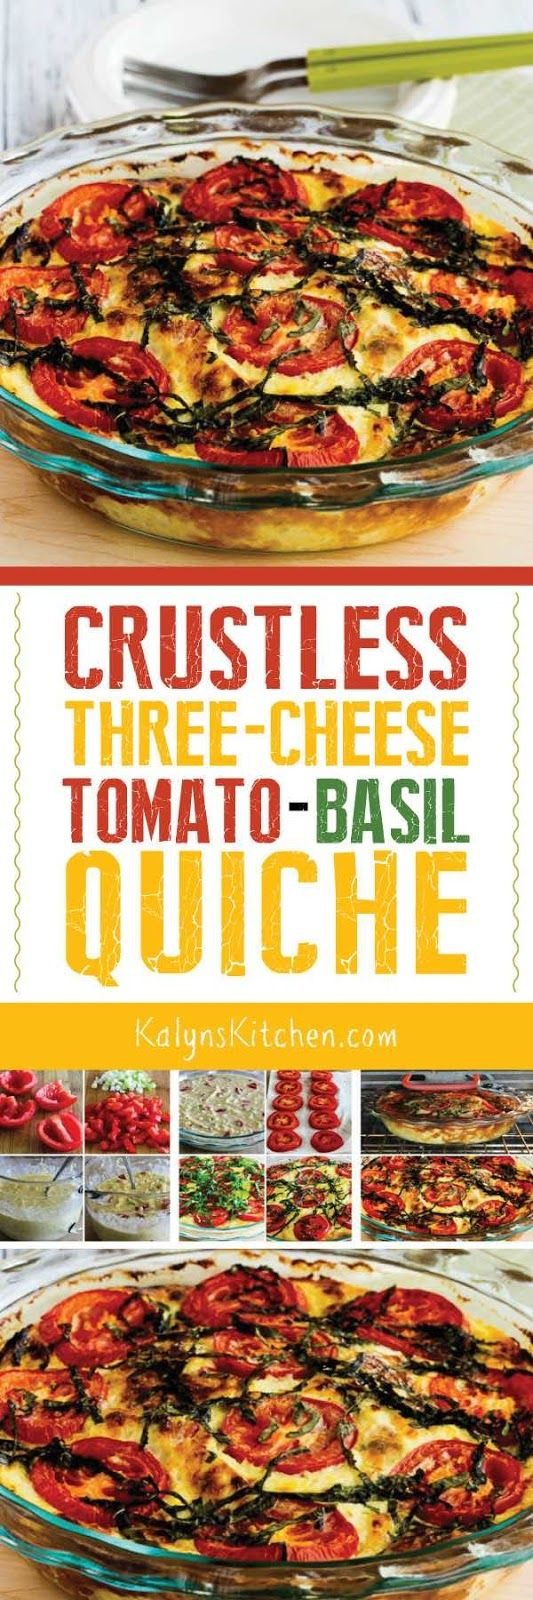 Any time you can get fresh basil, buy some Roma tomaotes and make this Crustless Three-Cheese Tomato-Basil Quiche; this quiche is a great breakfast option for a holiday or special occasionl. And this meatless recipe is also low-carb, low-glycemic, gluten-free, and South Beach Diet friendly. [found on KalynsKitchen.com]